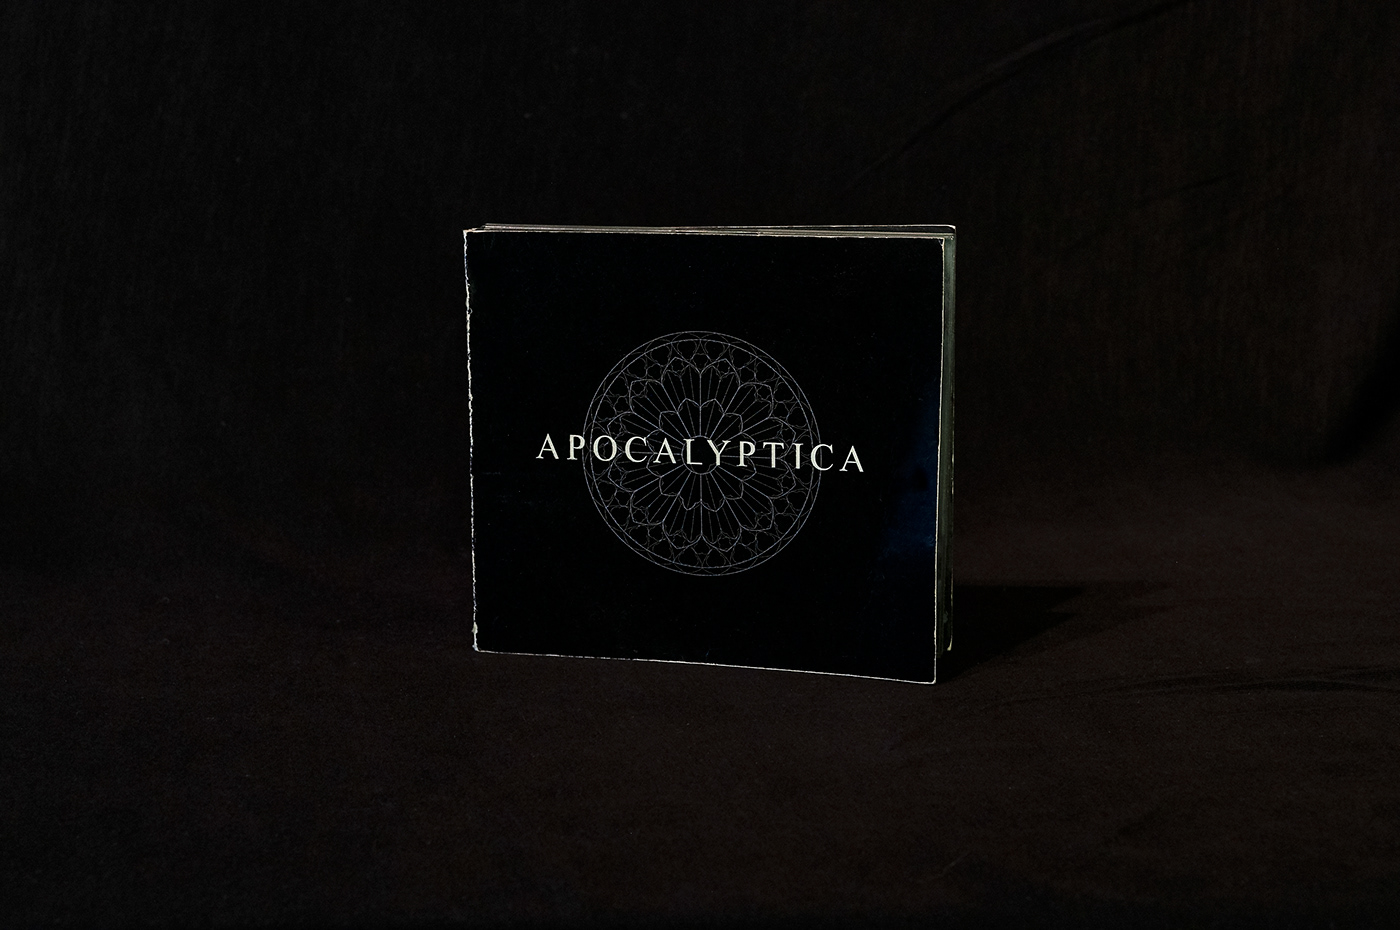 typography  ,font,customfont,Merch,merchandise,cover,apocalyptica,metal,sometimes,graphic design